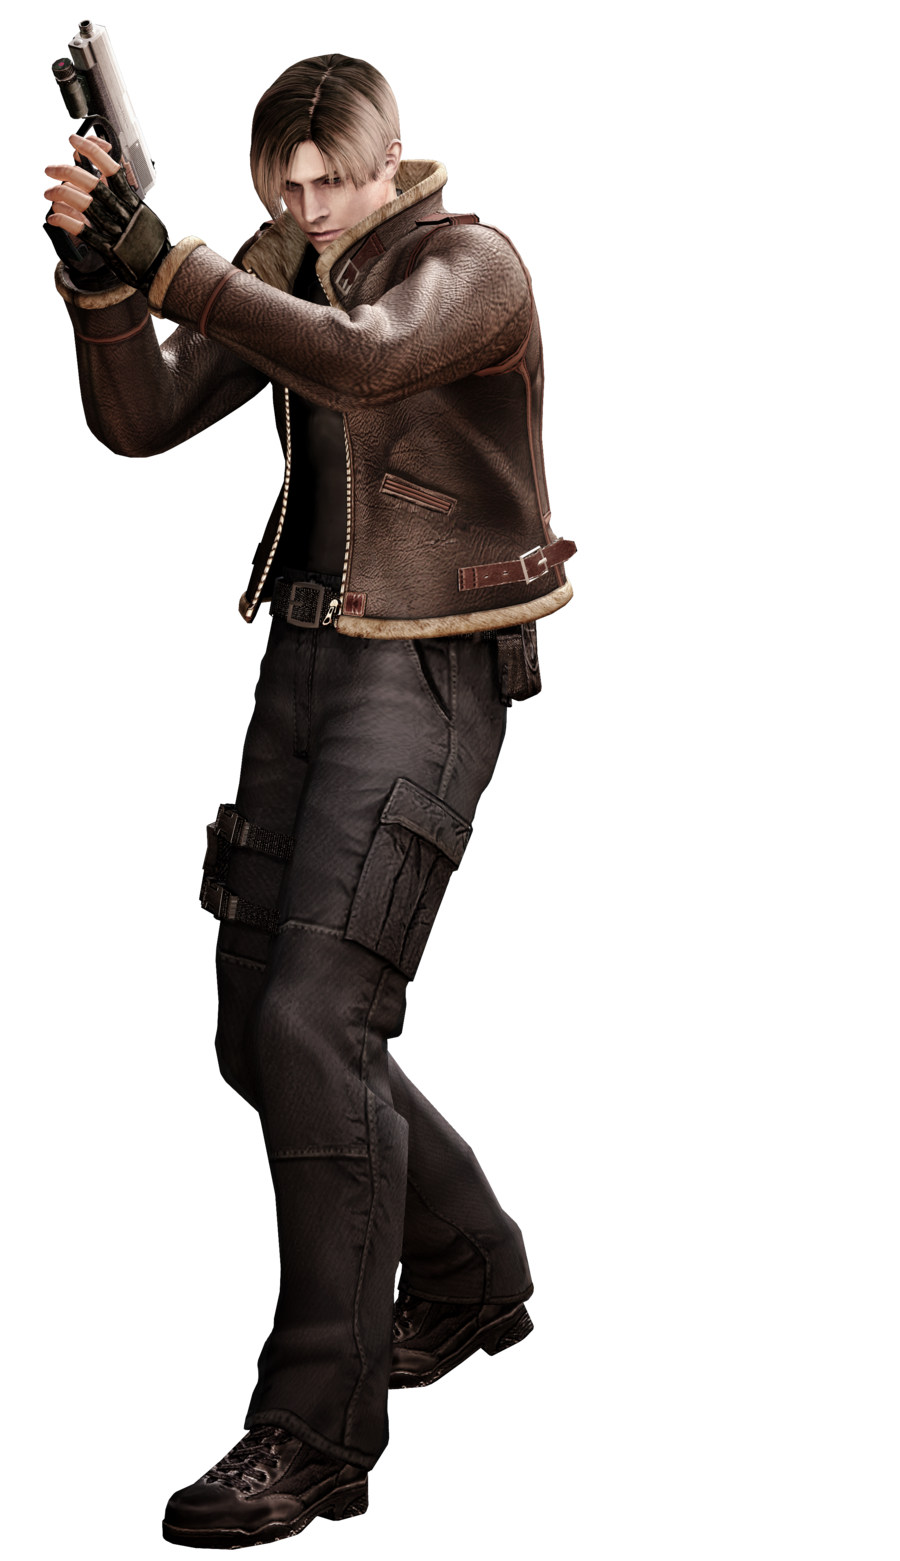 Resident evil 4 png. Lttp why is this